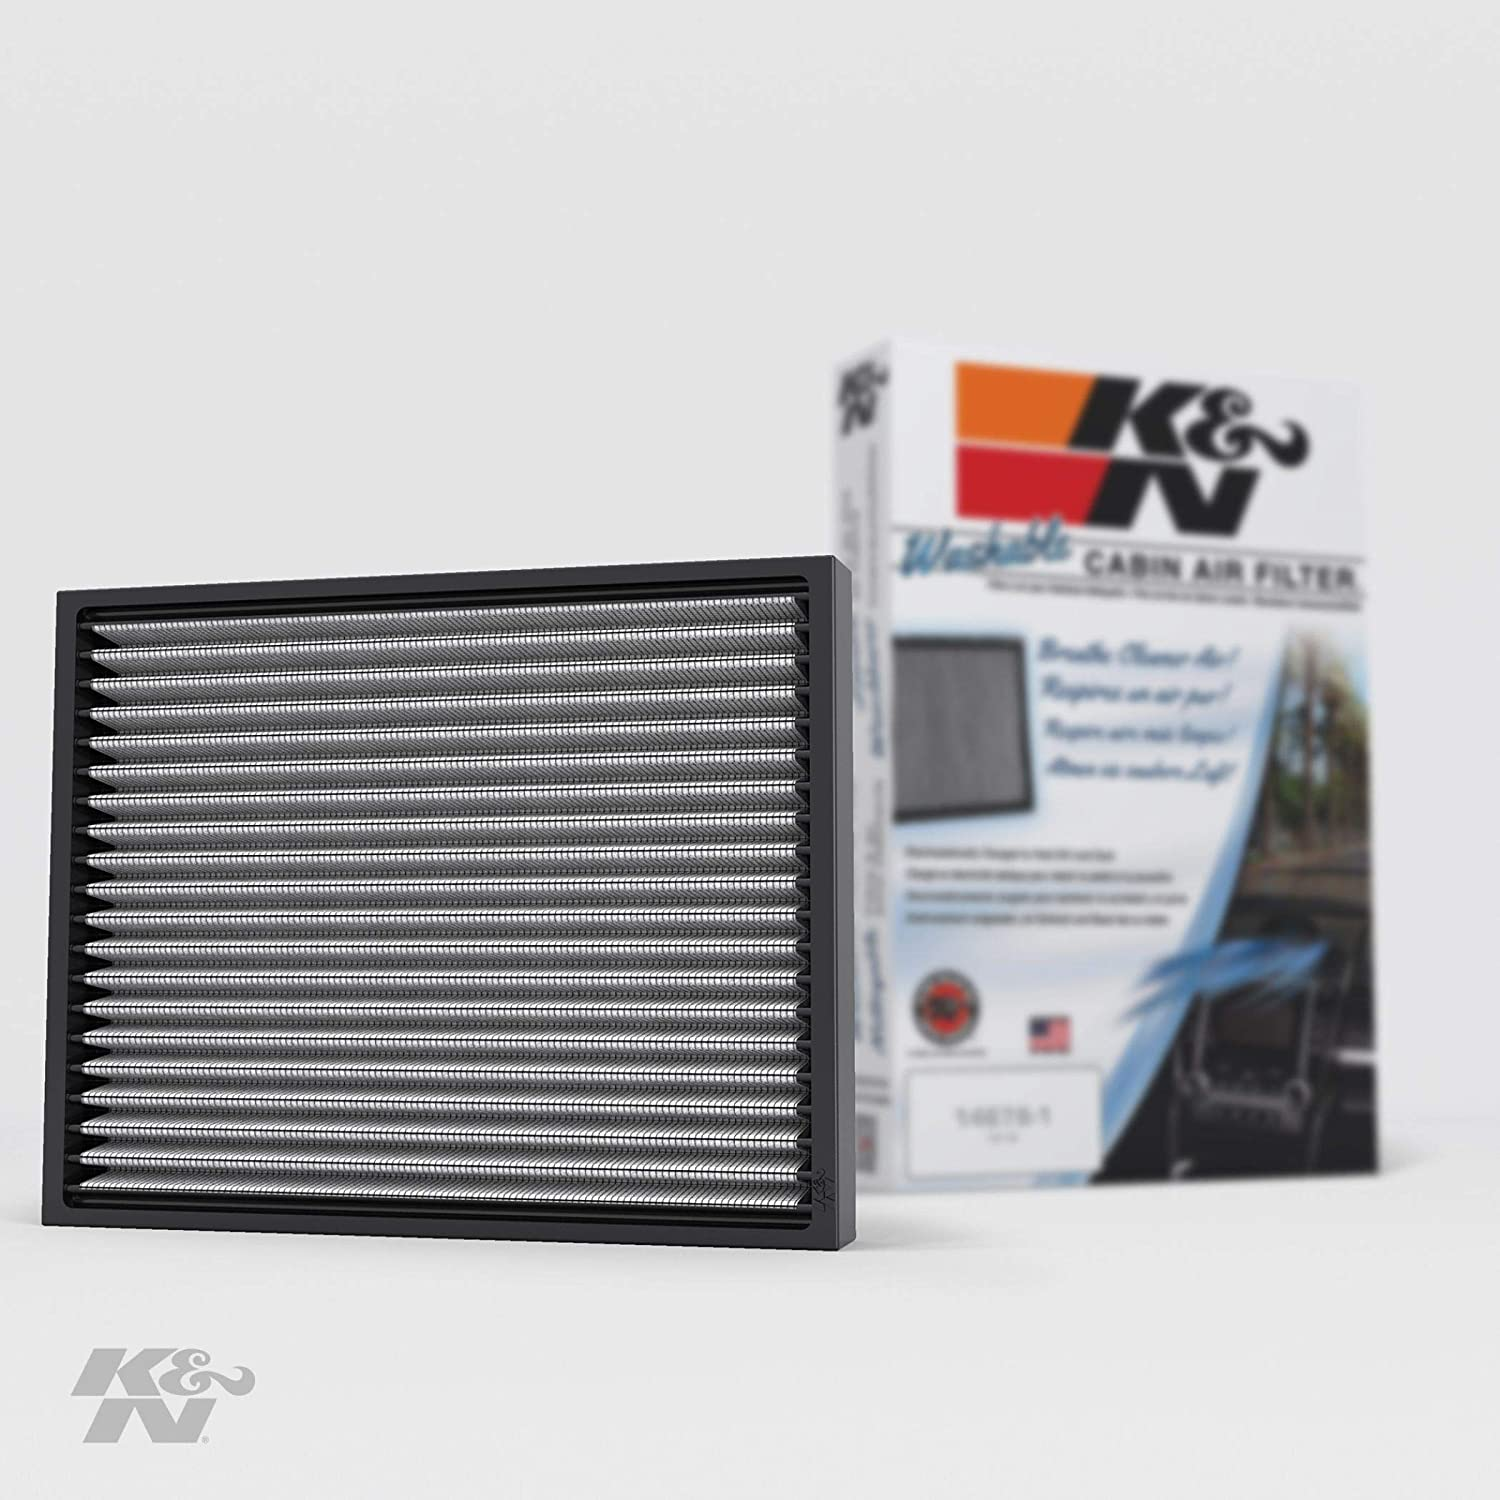 K&N Premium Cabin Air Filter: High Performance, Lasts for the Life of your Vehicle:Designed For Select 2005-2019 Toyota Tacoma, 1999-2002 Subaru Liberty, 2003-2008 Pontiac Vibe, VF2005